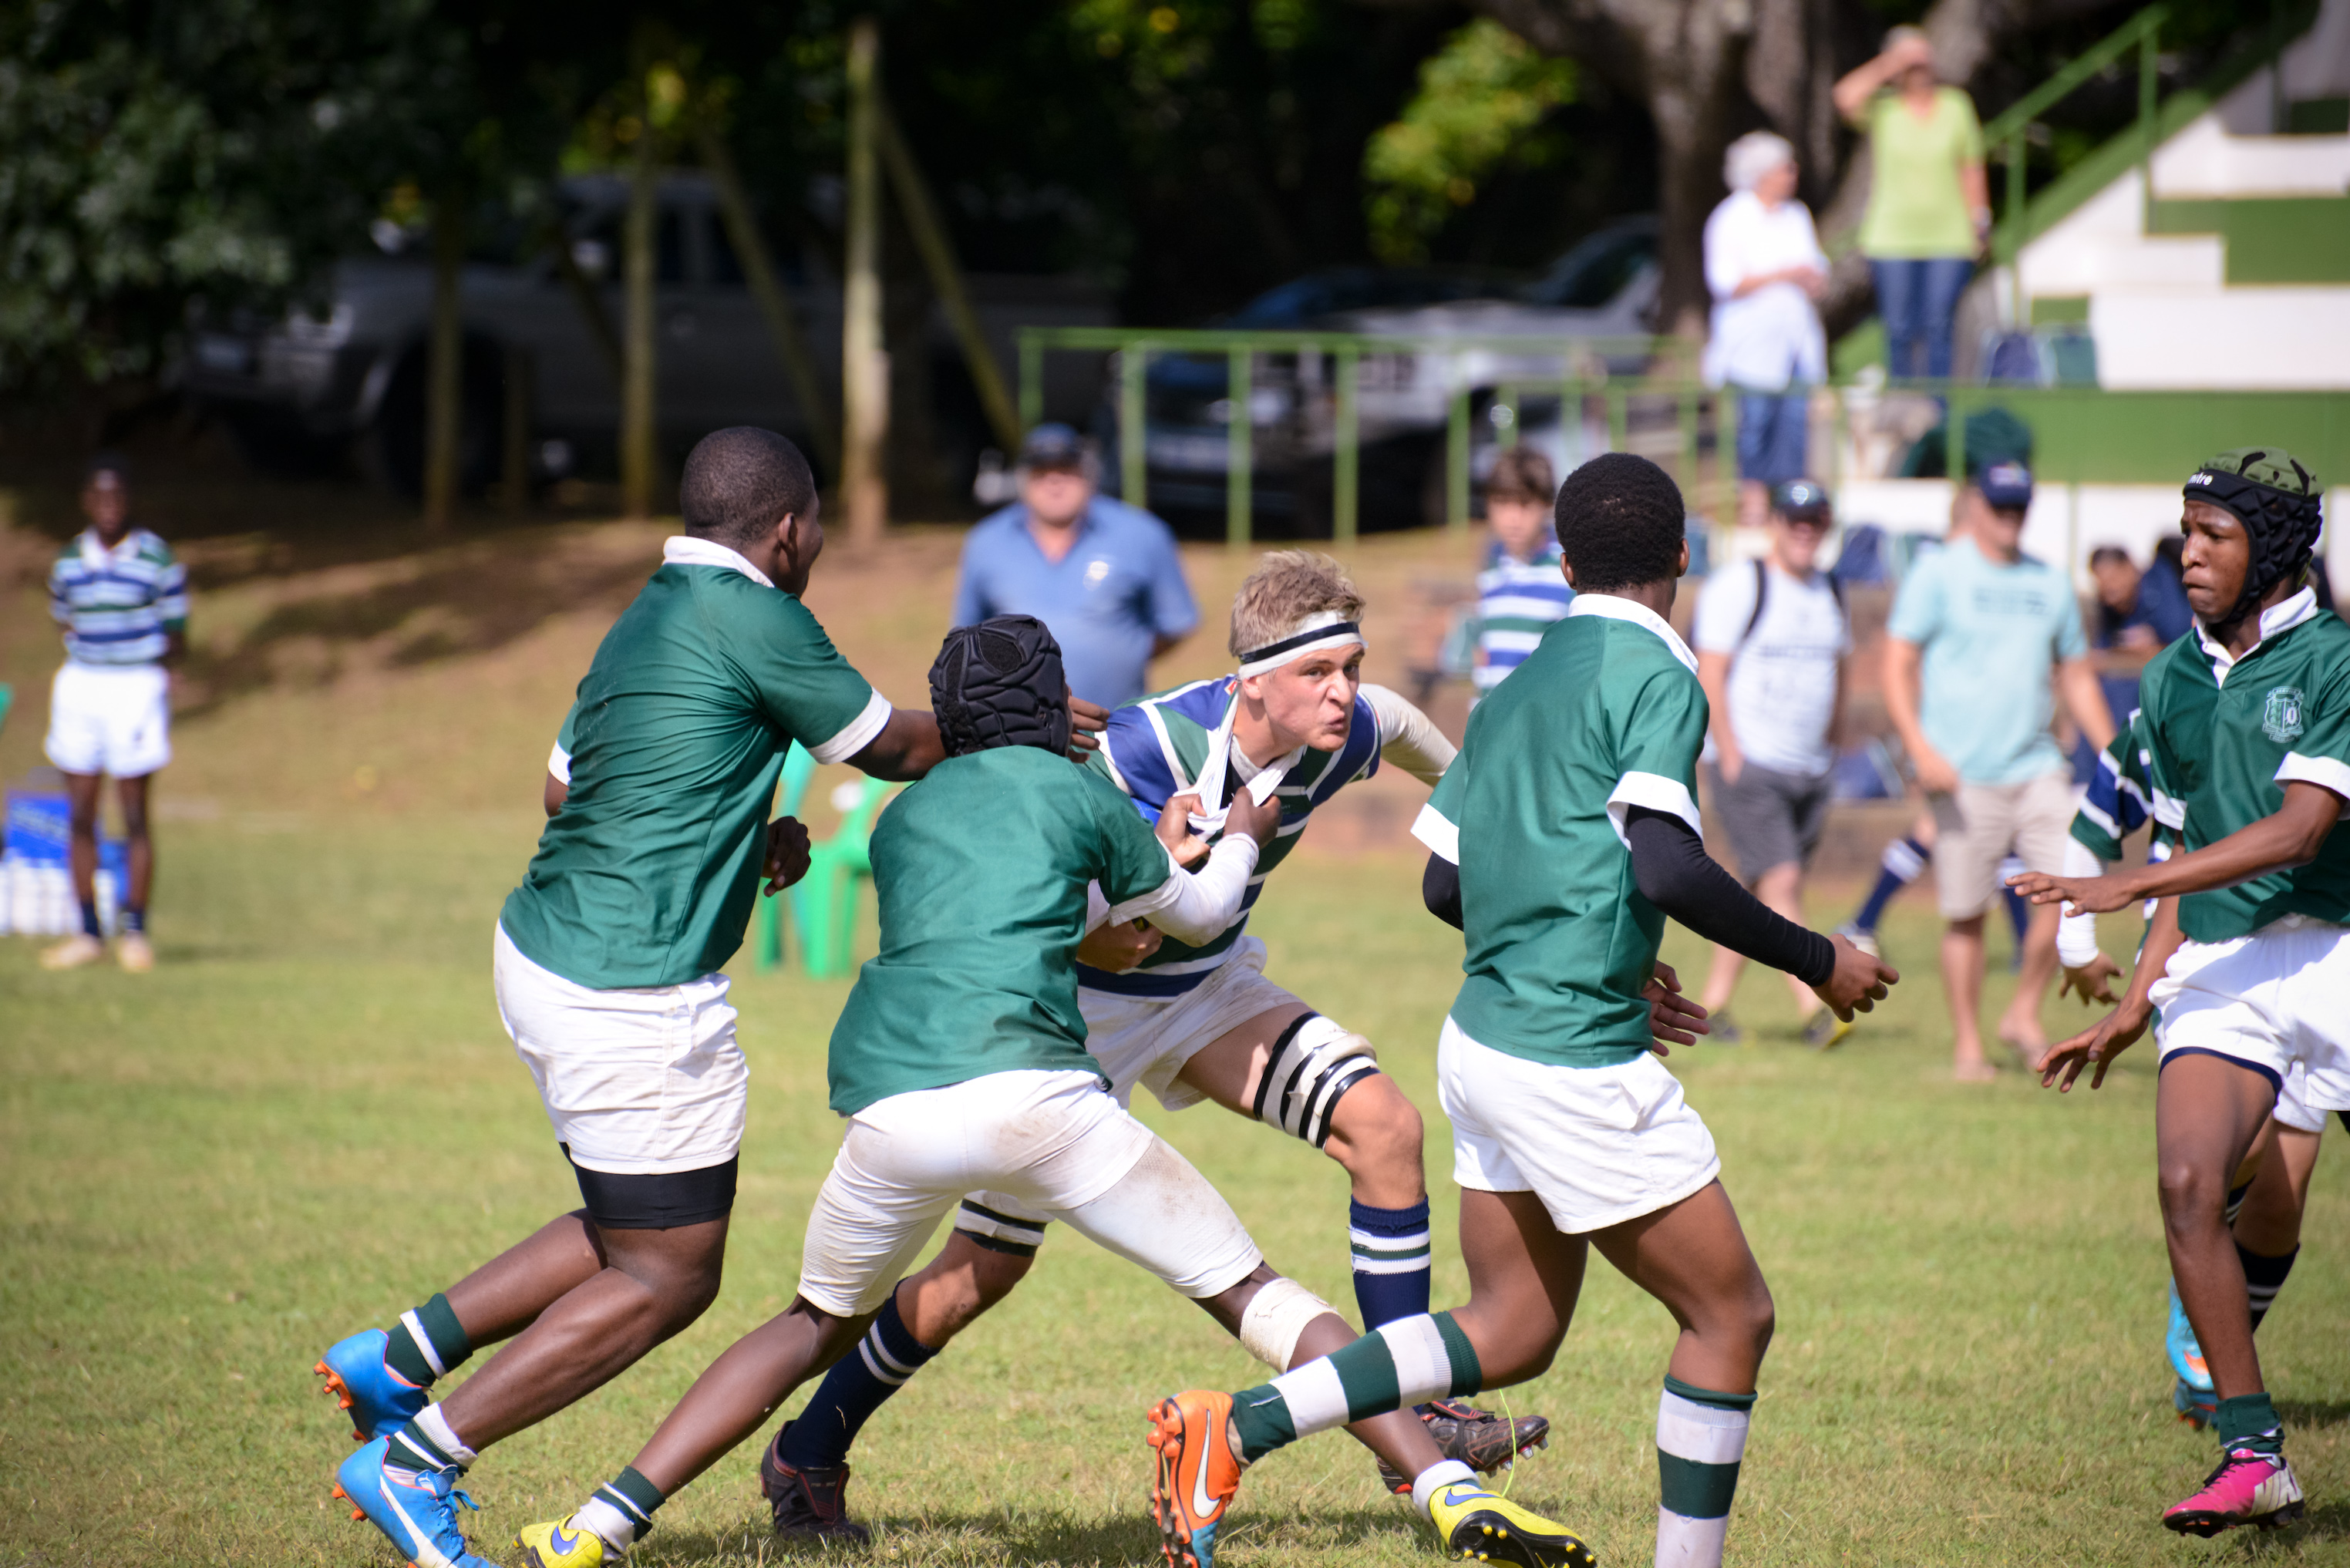 Grantleigh vs Eshowe Winter Sports Day